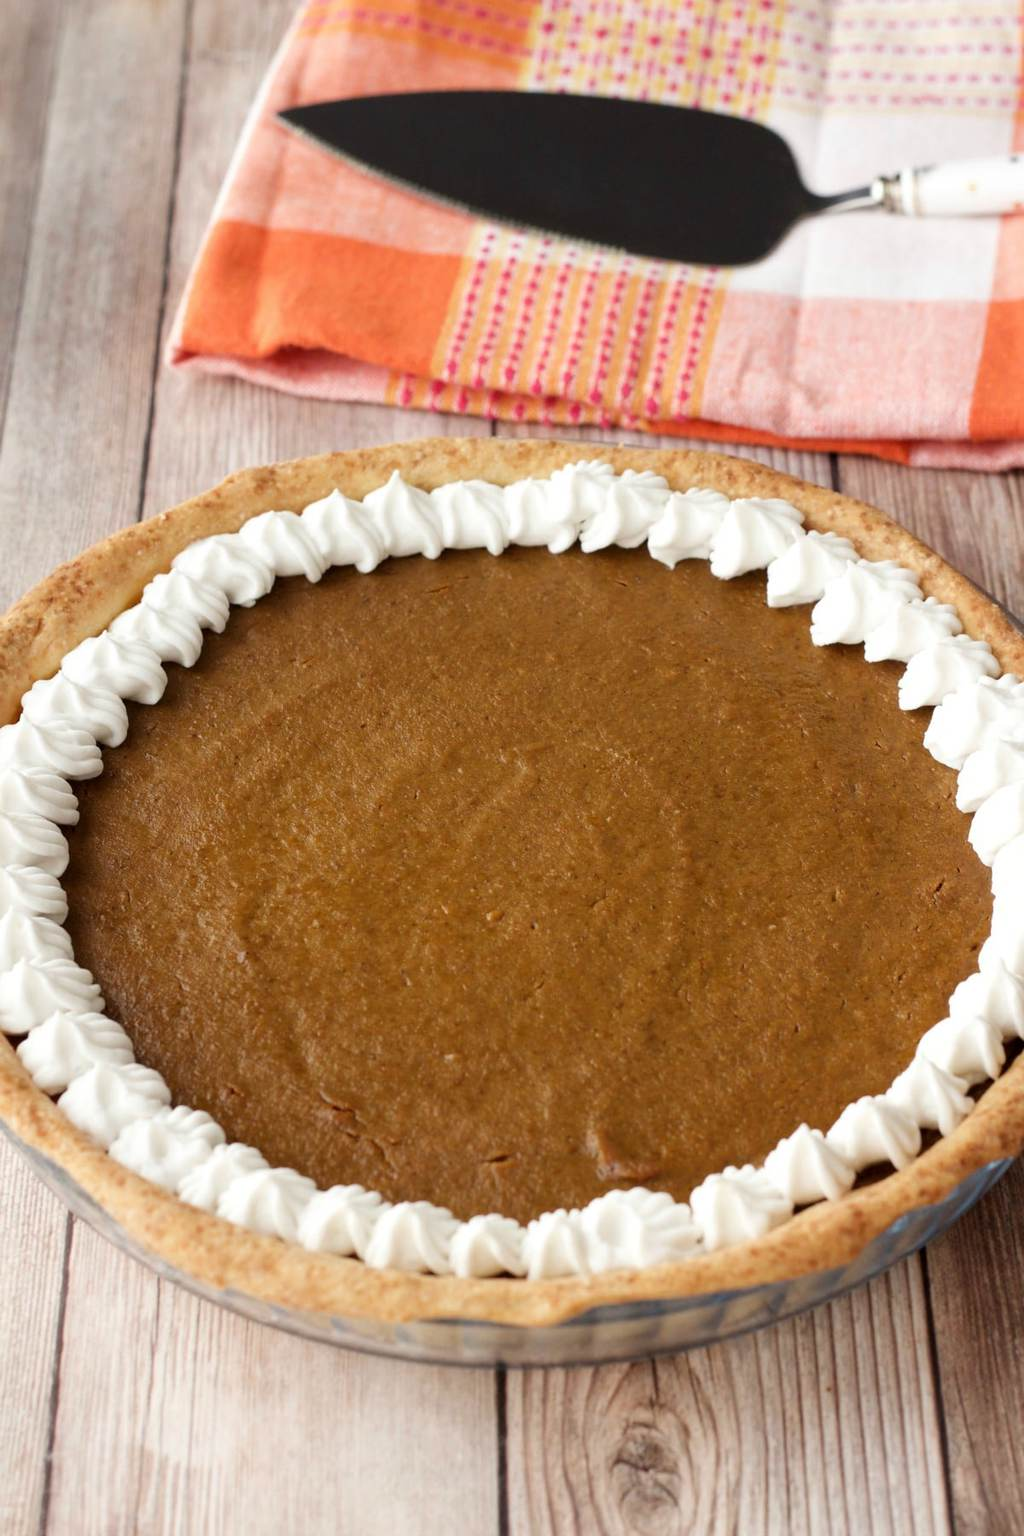 Vegan Pumpkin Pie. Deliciously spiced and fabulously creamy! #vegan #lovingitvegan #pumpkinpie #dessert